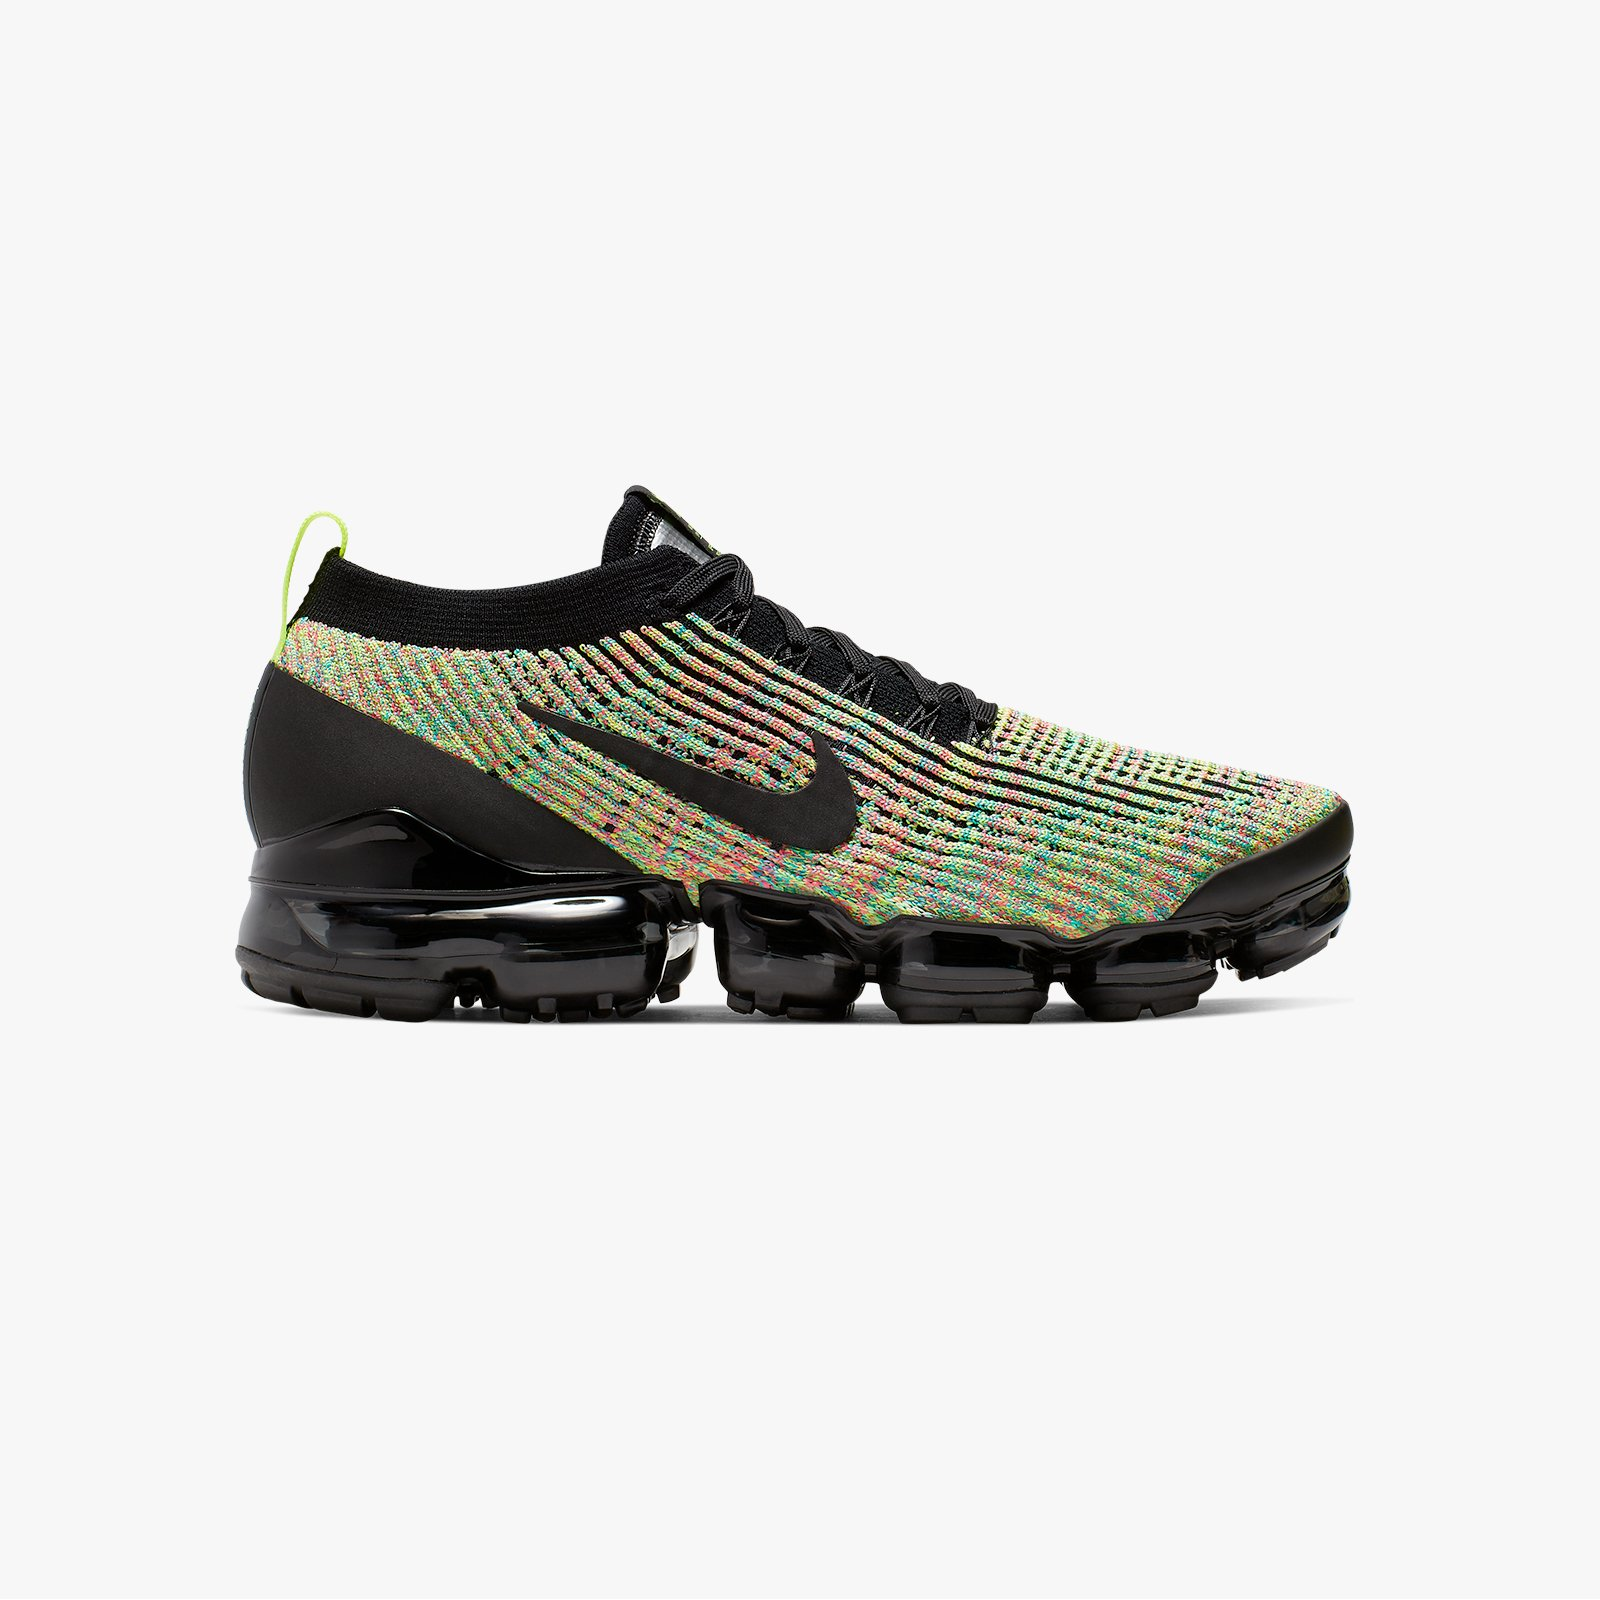 official photos c41ce 1dfc1 Nike Air Vapormax Flyknit 3 - Aj6900-006 - Sneakersnstuff ...